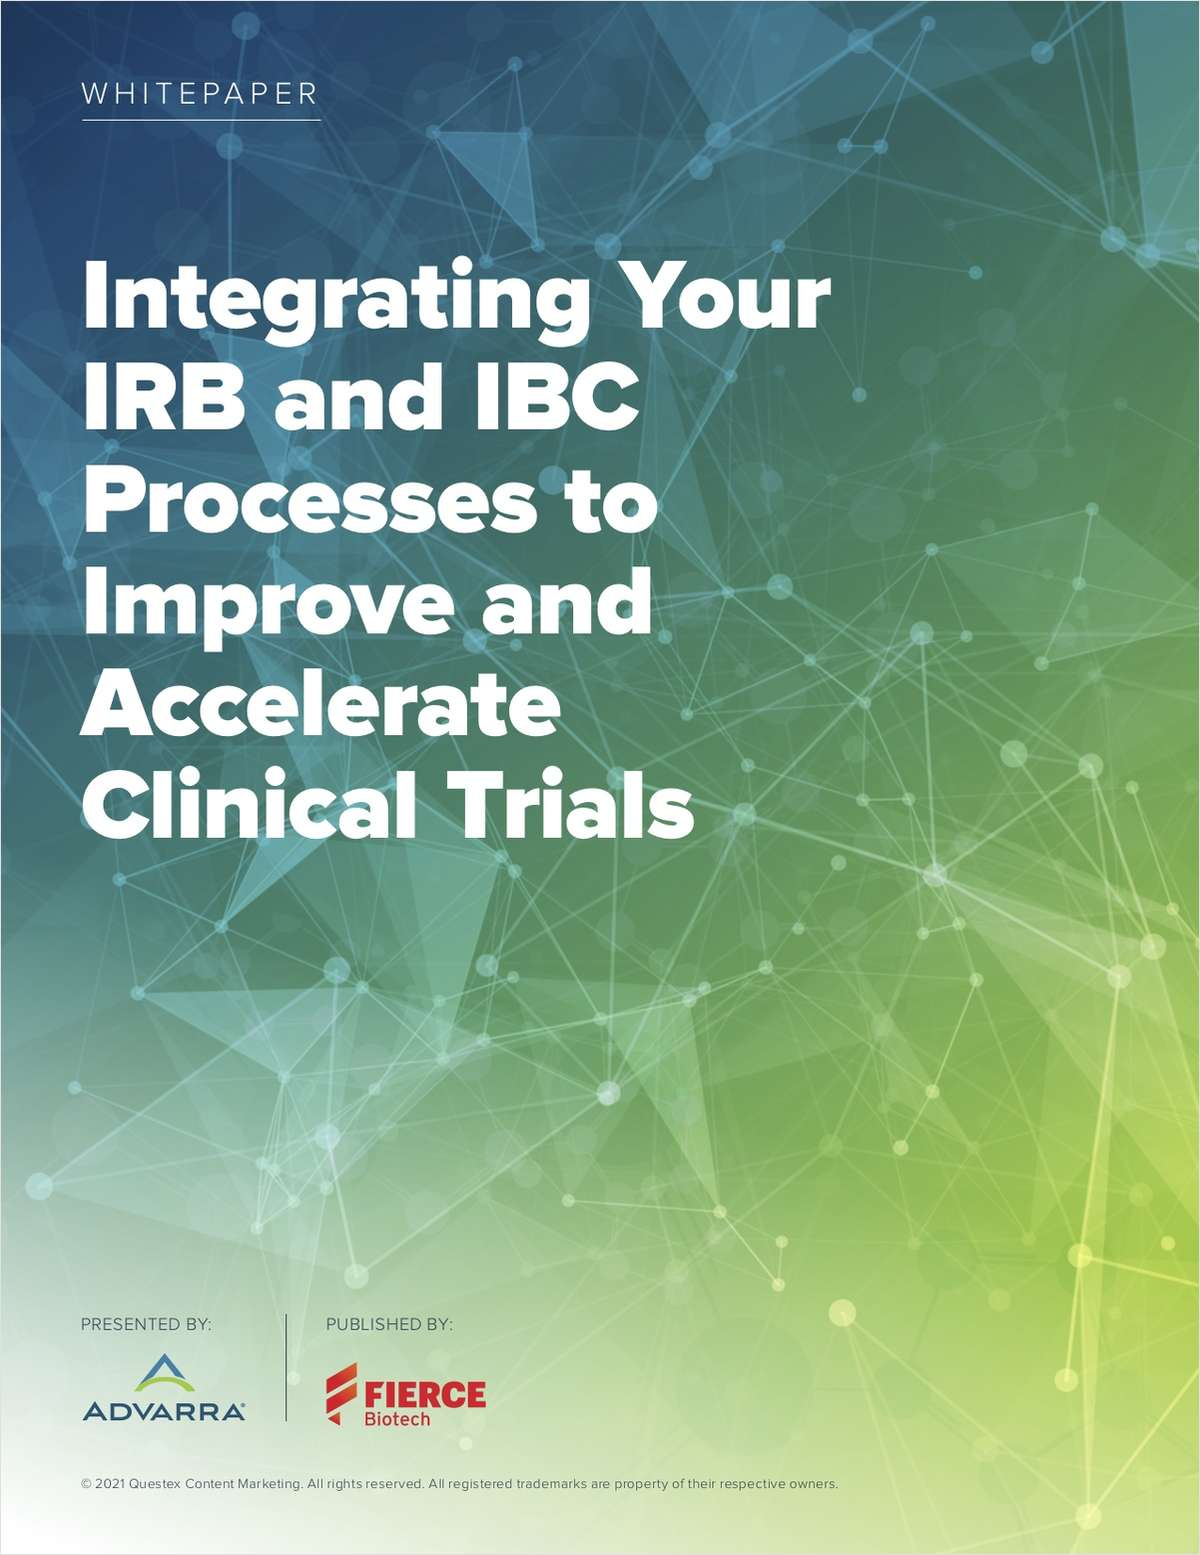 Integrating Your IRB and IBC Processes to Improve and Accelerate Clinical Trials